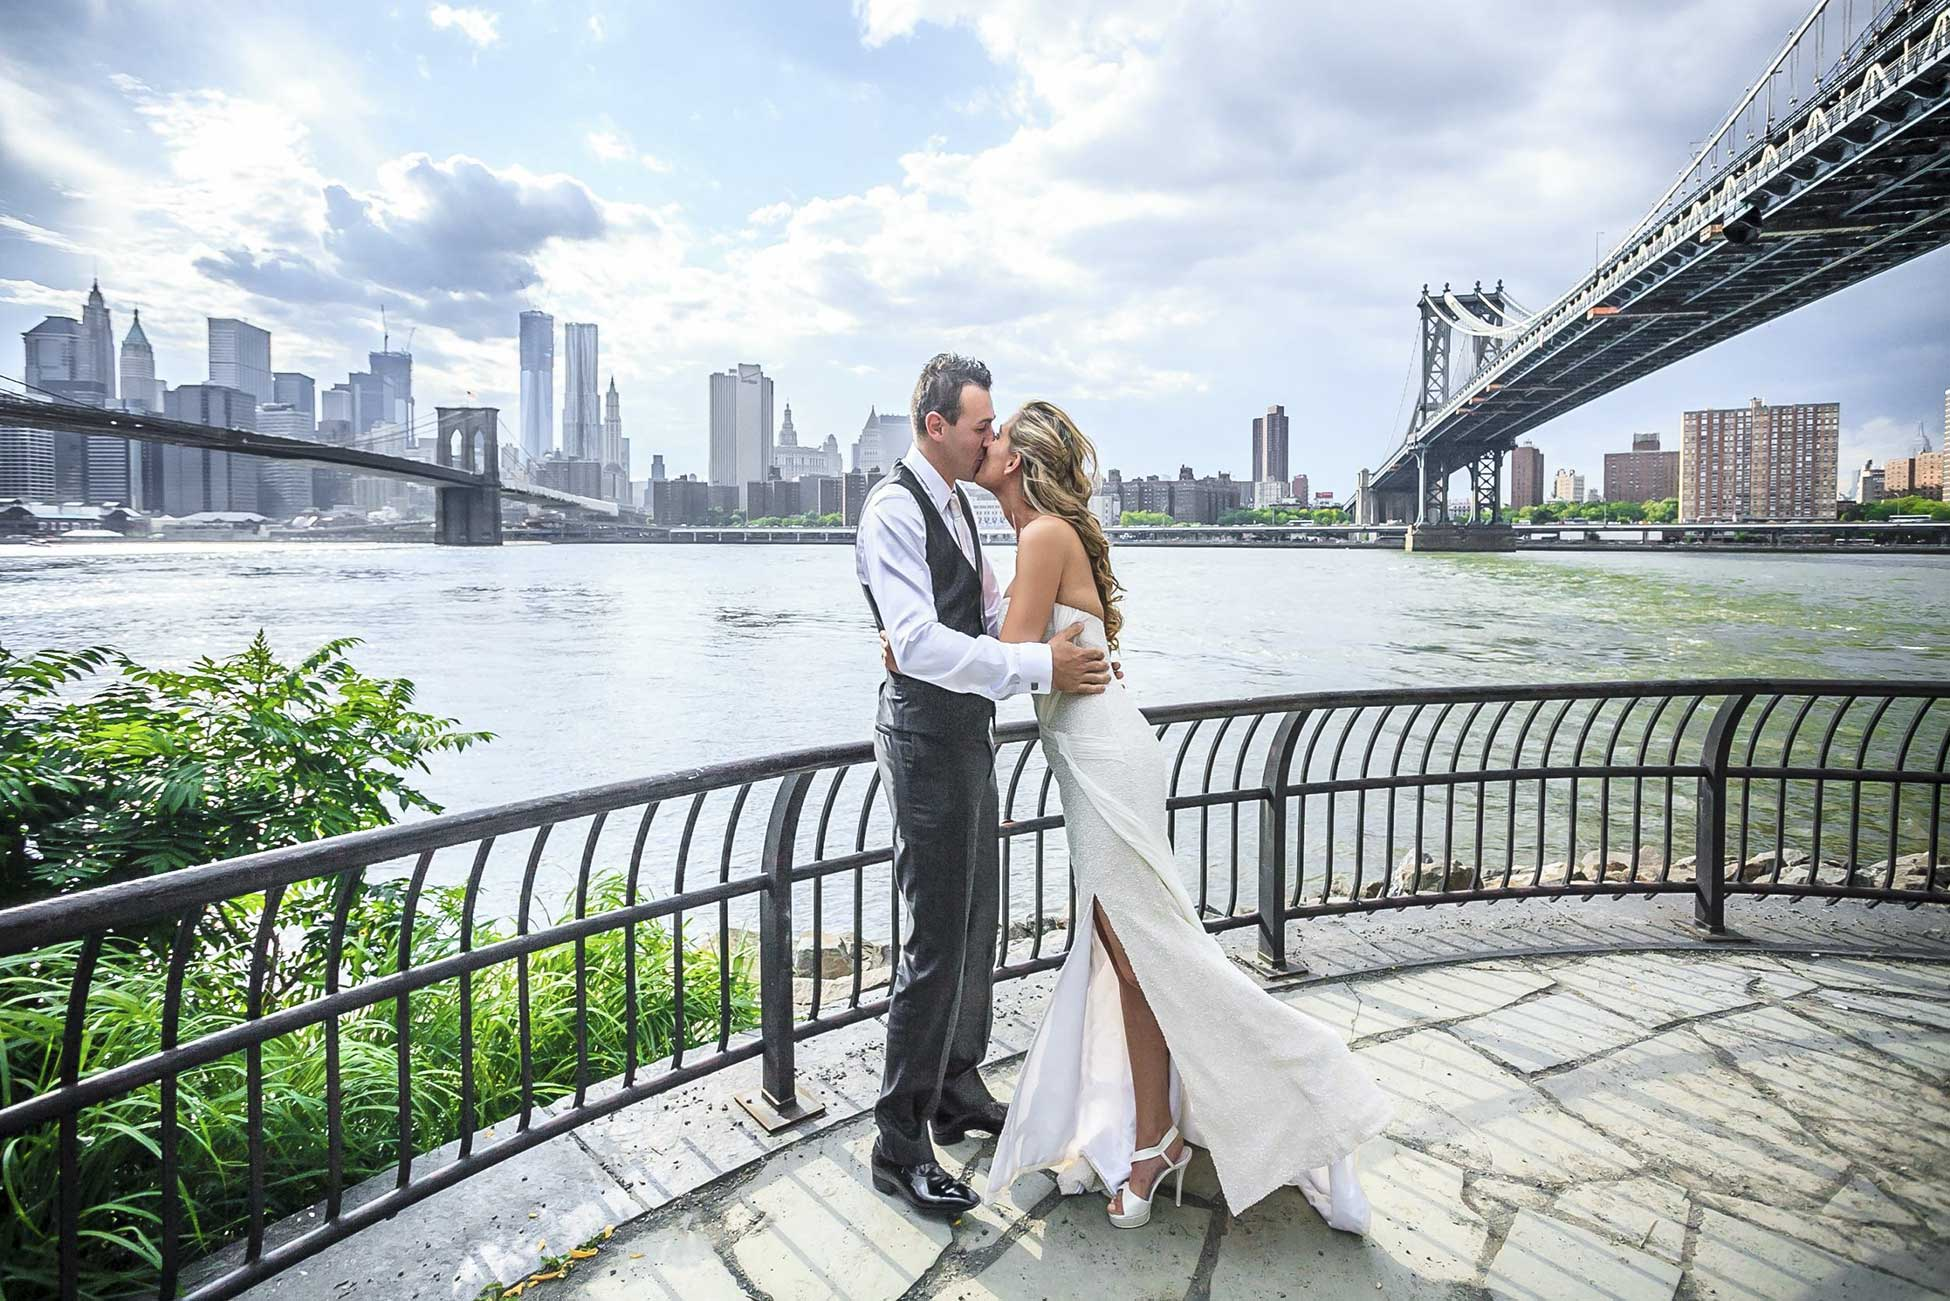 Anniversario Di Matrimonio Nei Sogni.Come Sposarsi A New York Matrimonio A New York